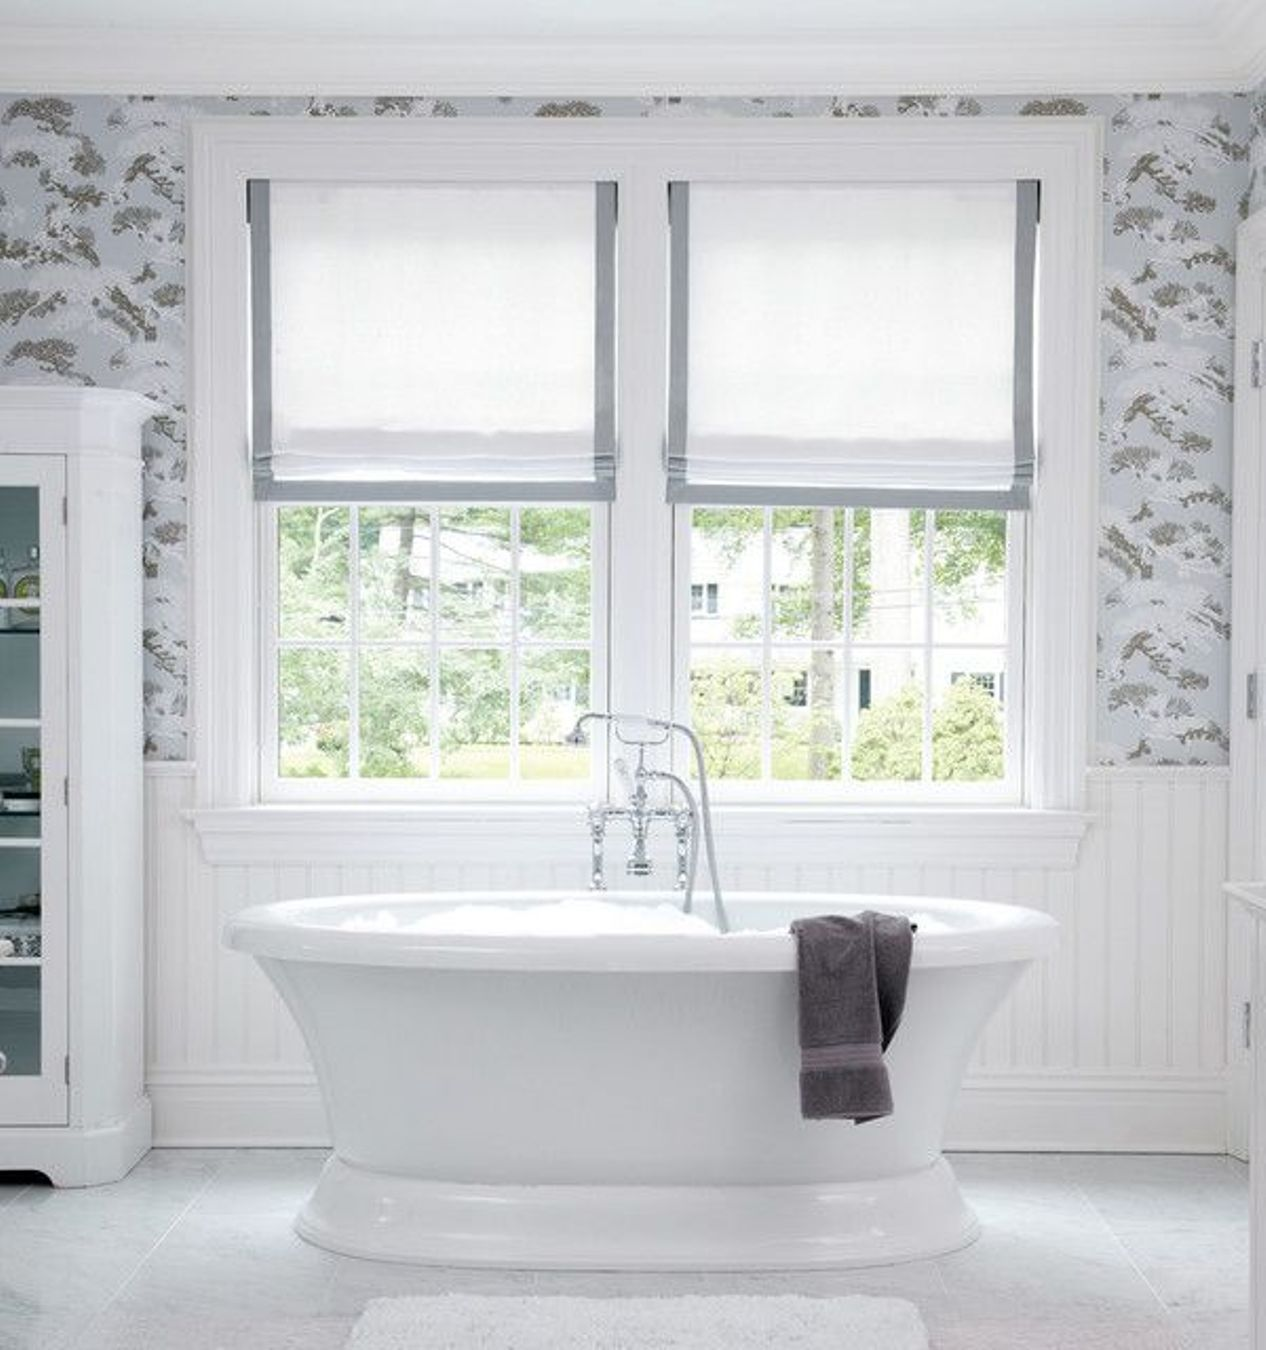 Bathroom Window Treatments interior and decor , useful bathroom window treatments : white and